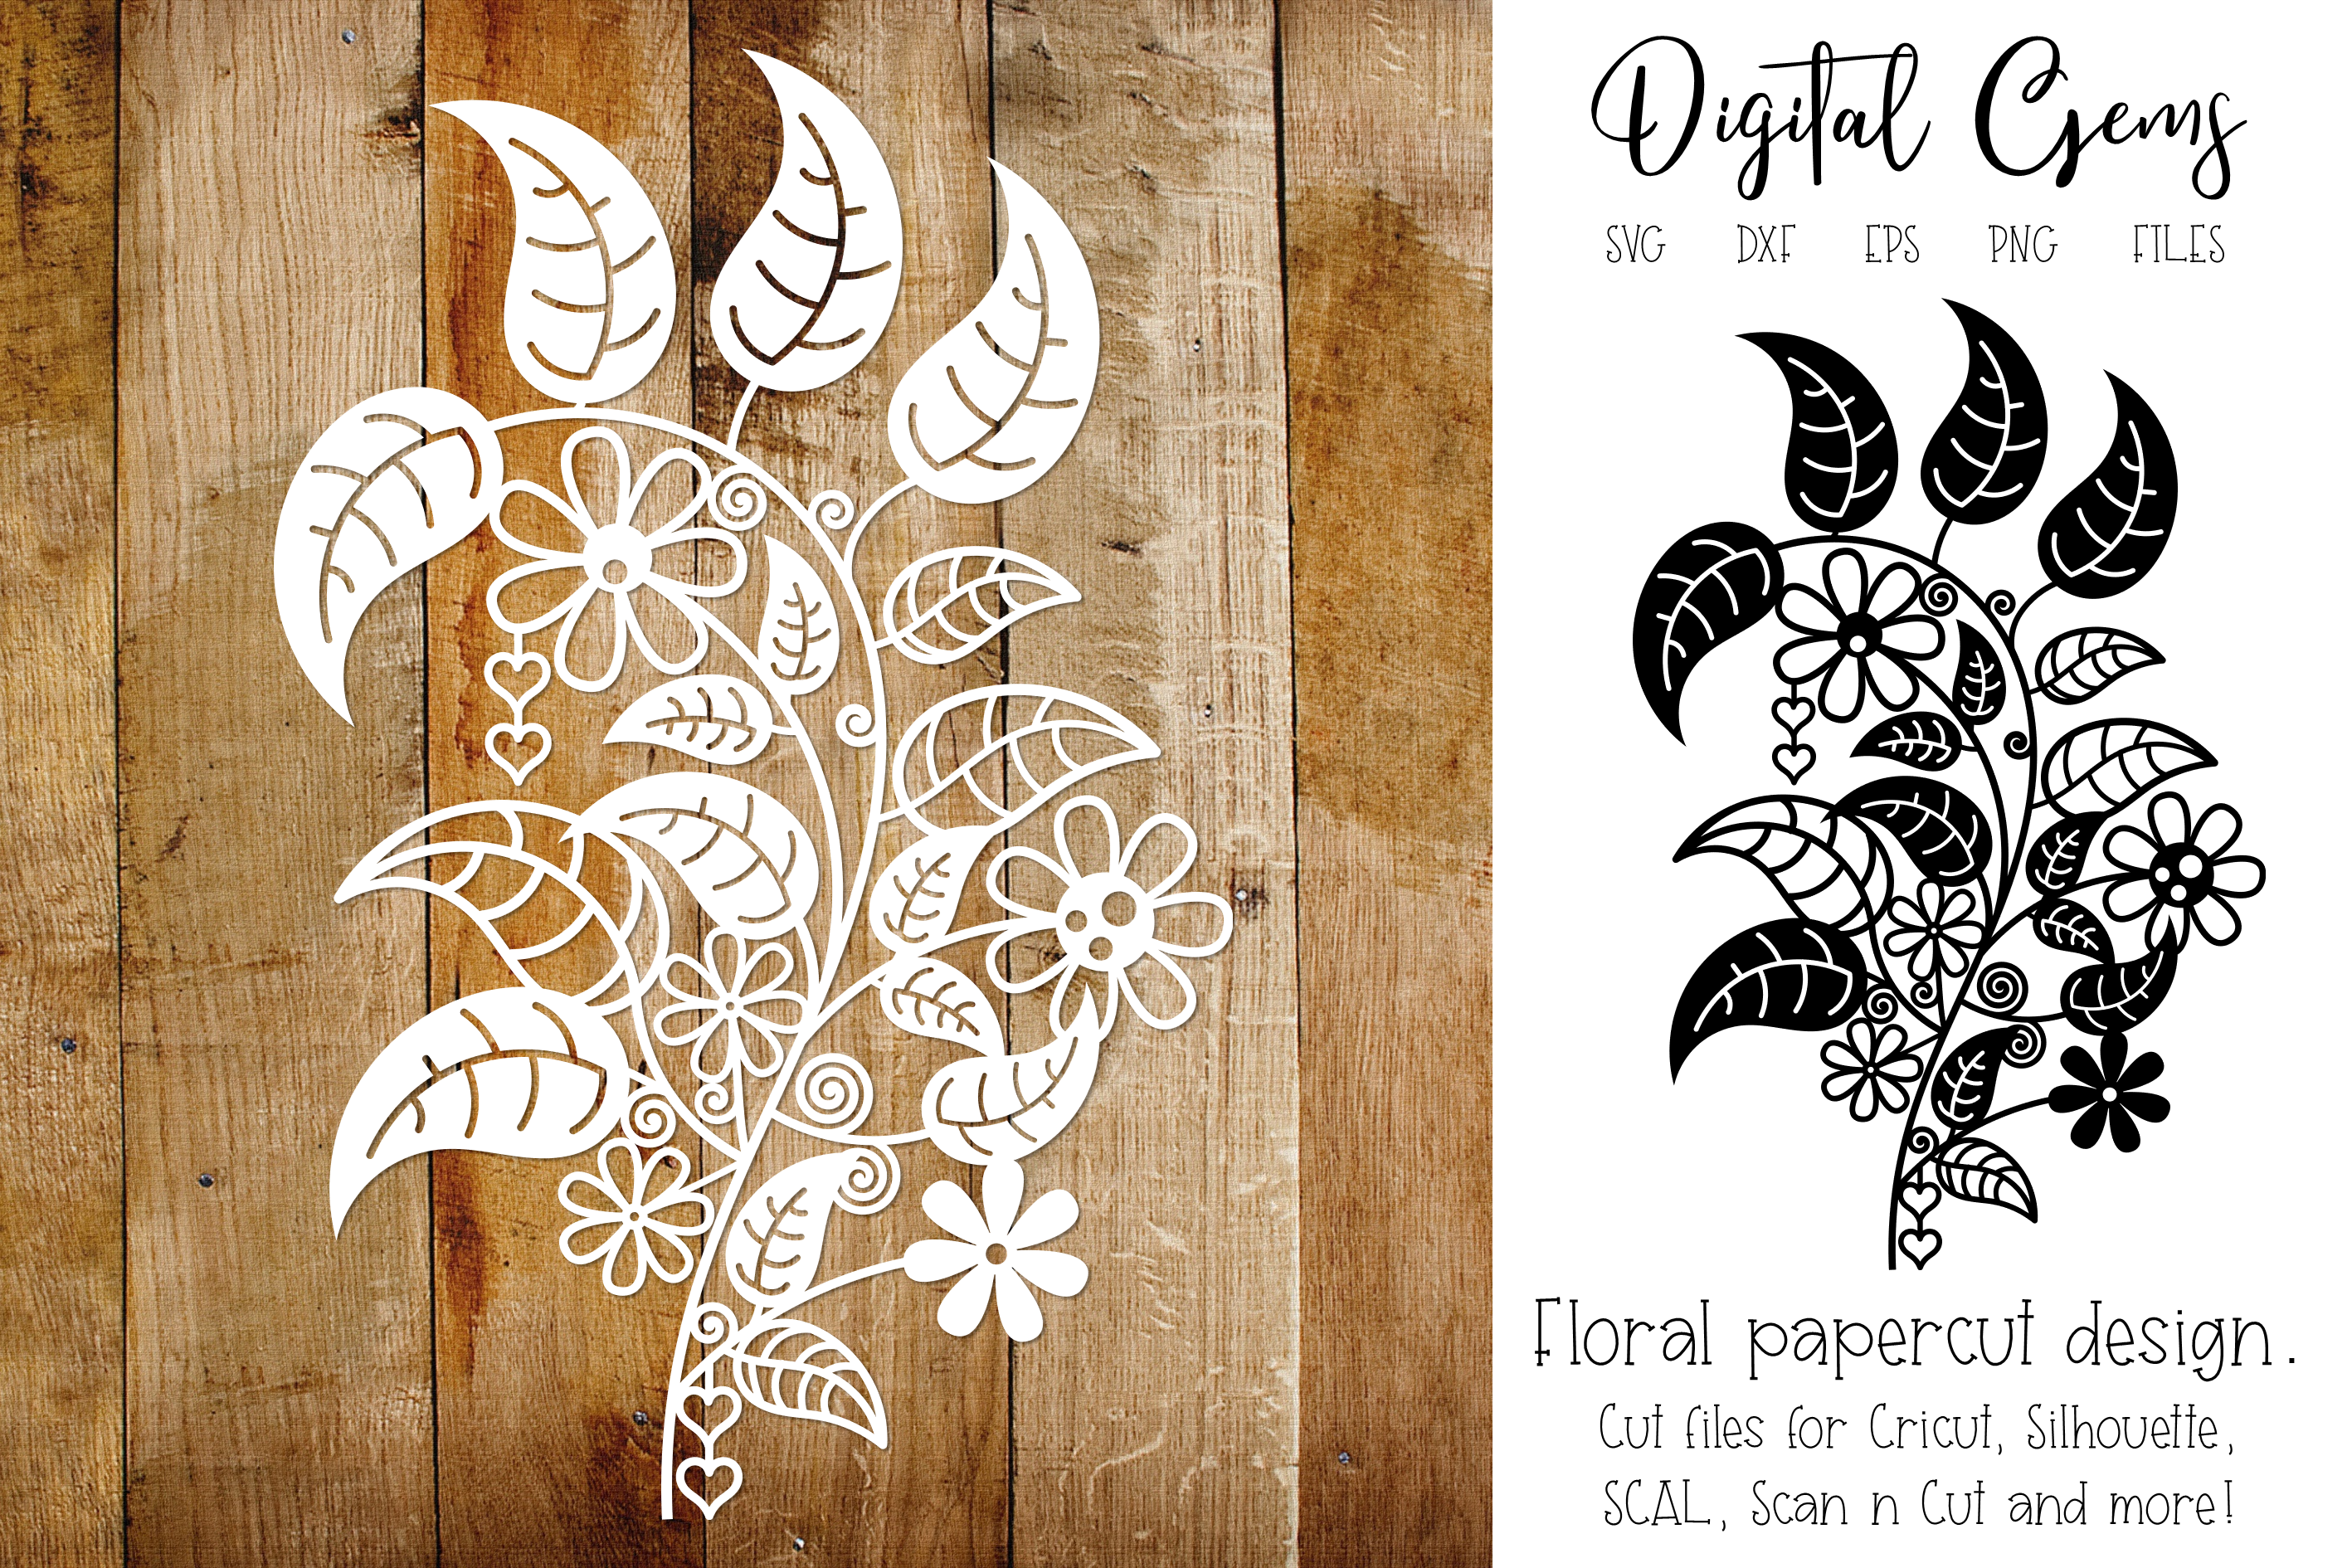 Flower Papercut Design Graphic By Digital Gems Creative Fabrica